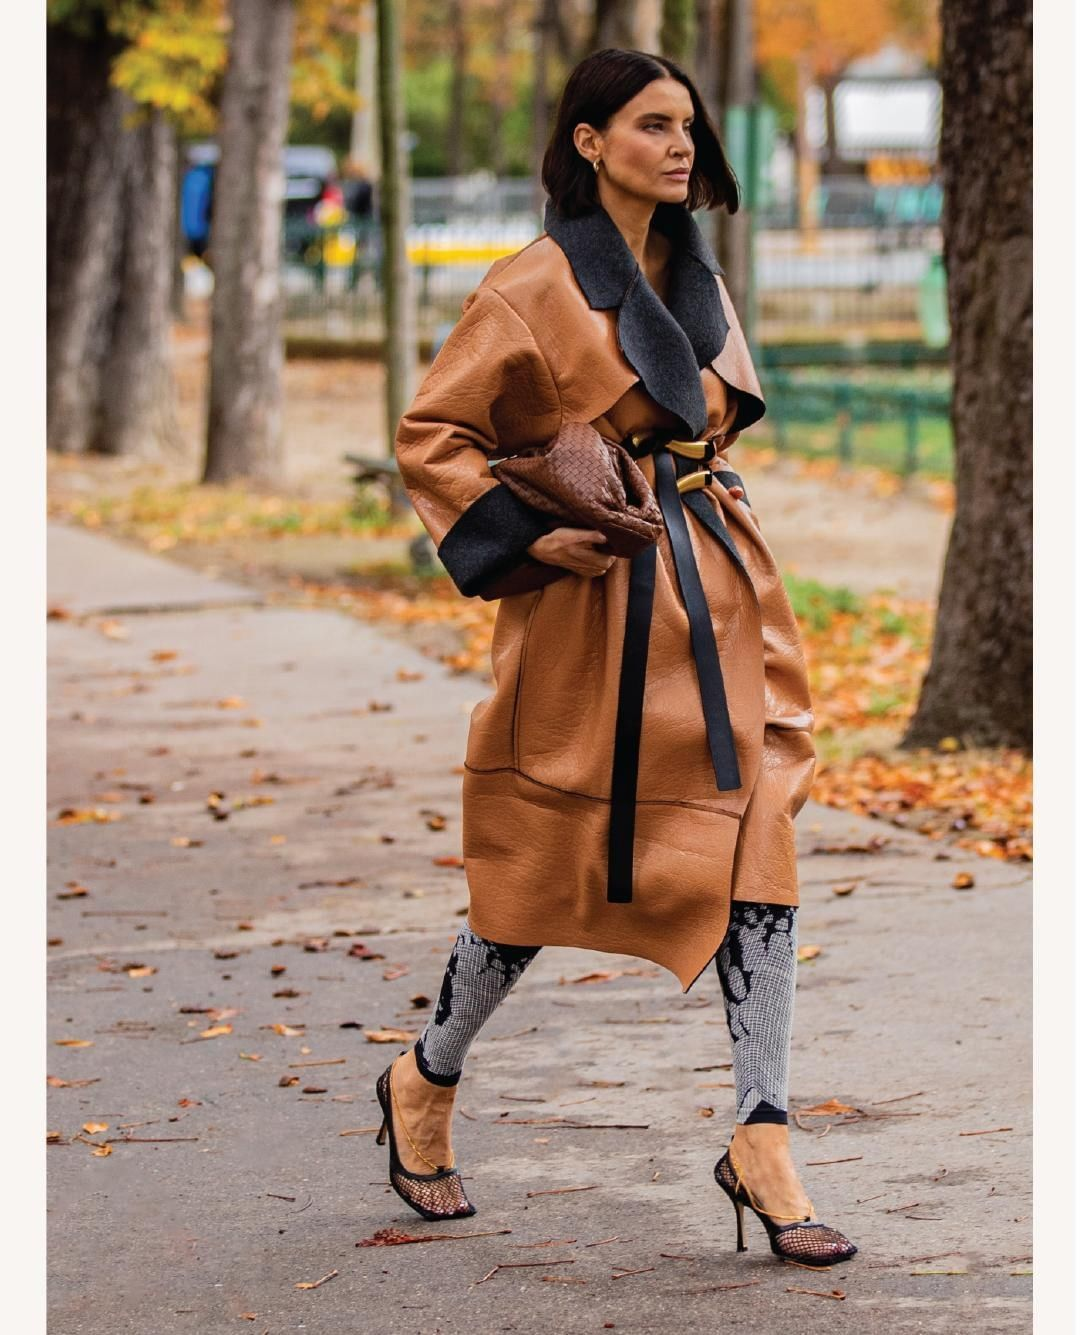 shoes pumps bottega veneta leggings leather long coat brown bag